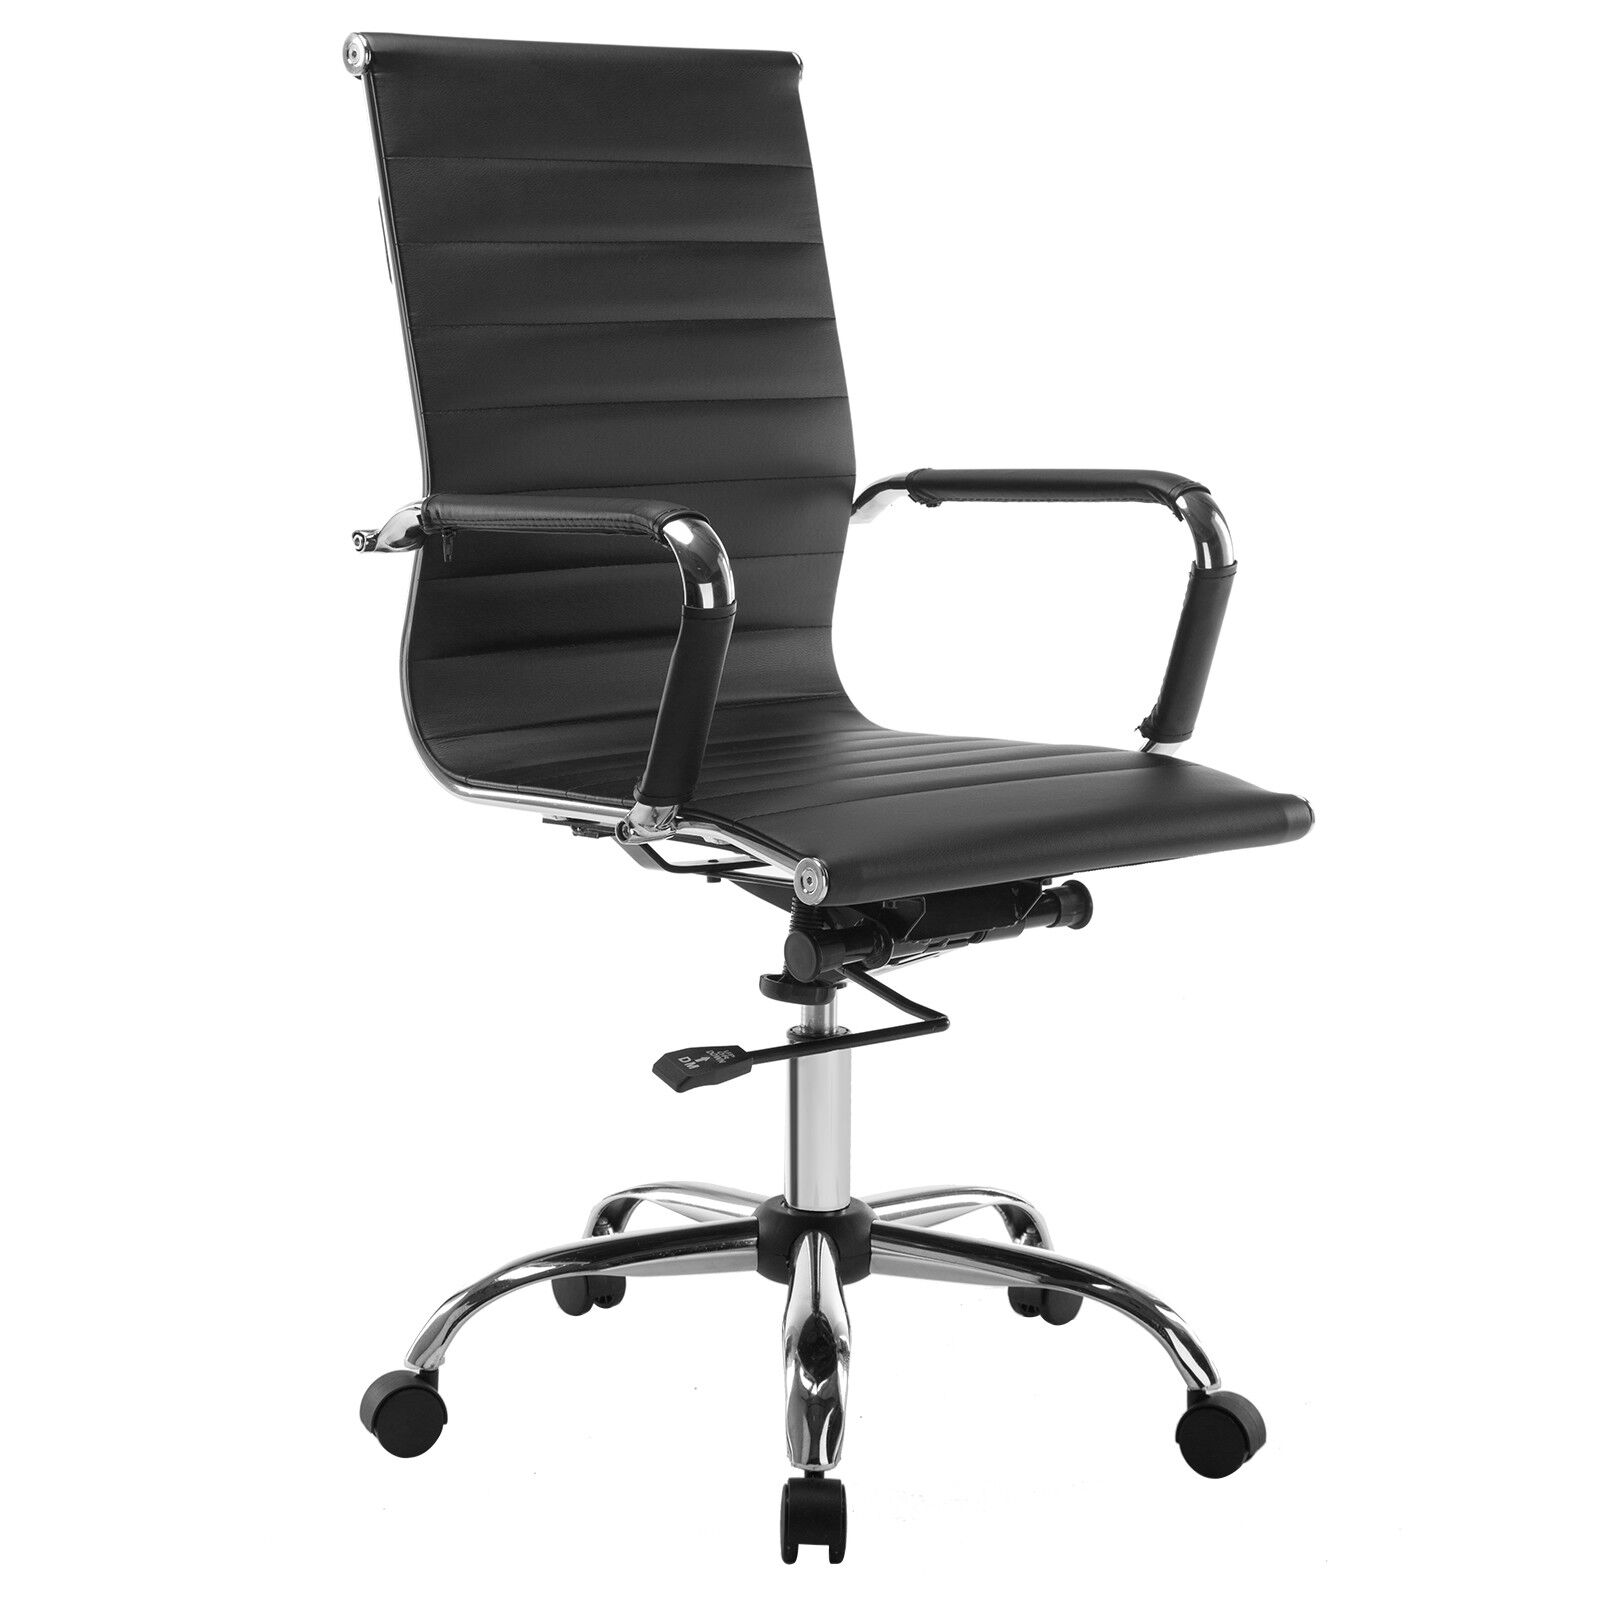 black leather office chair high back fisher price potty ergonomic executive task computer modern pu